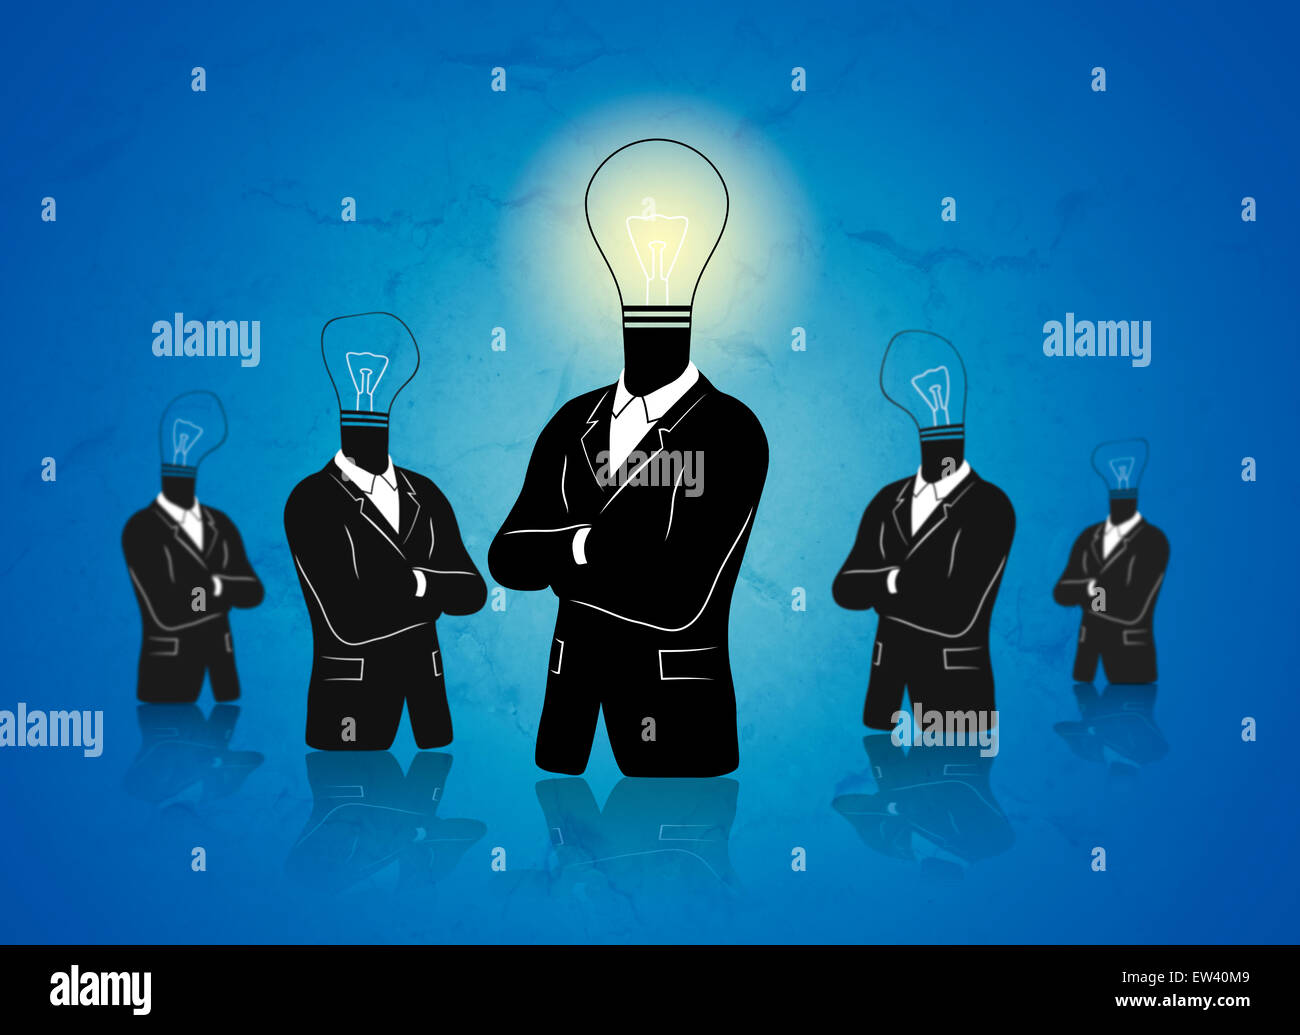 Concept of a thinking 'standing out' businessman with idea. - Stock Image